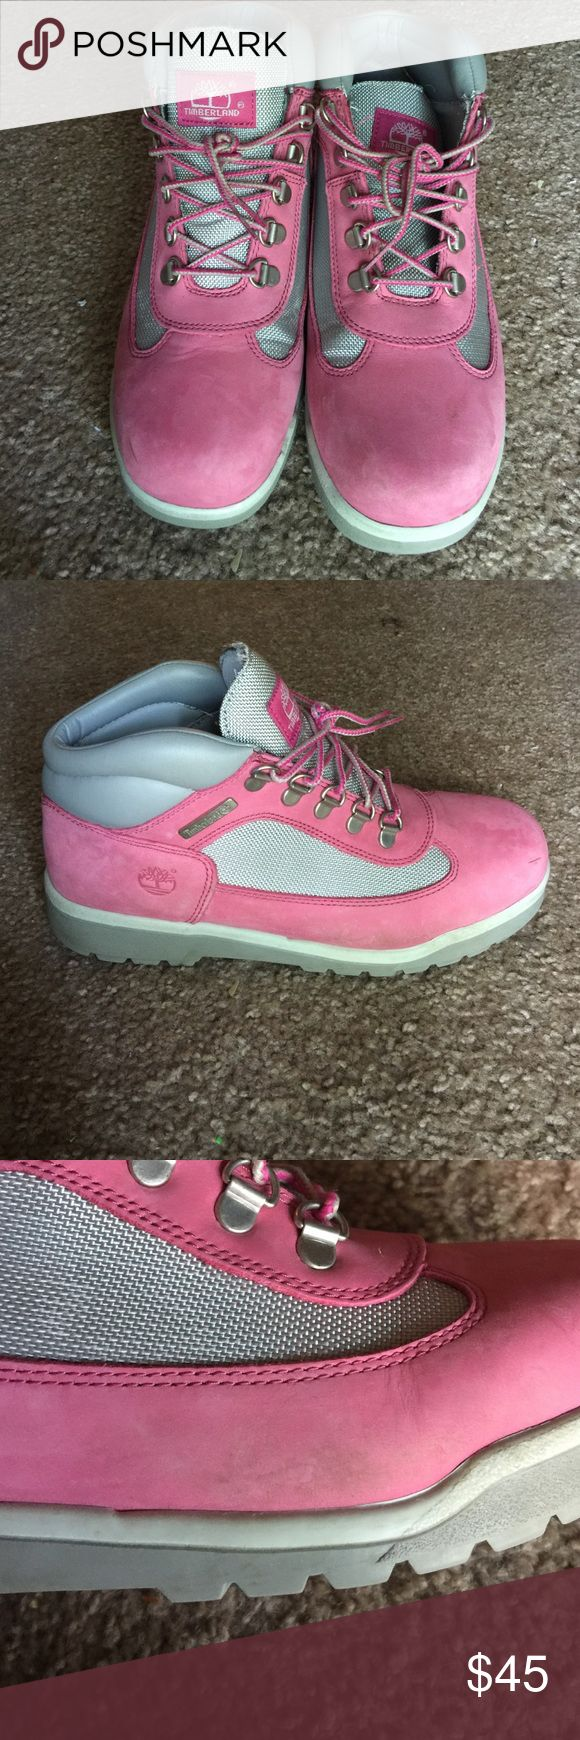 Timberland Field Boot pink/grey Pink and semi metallic grey, very minimal marks, box is included, laces included, very comfortable Timberland Shoes Winter & Rain Boots